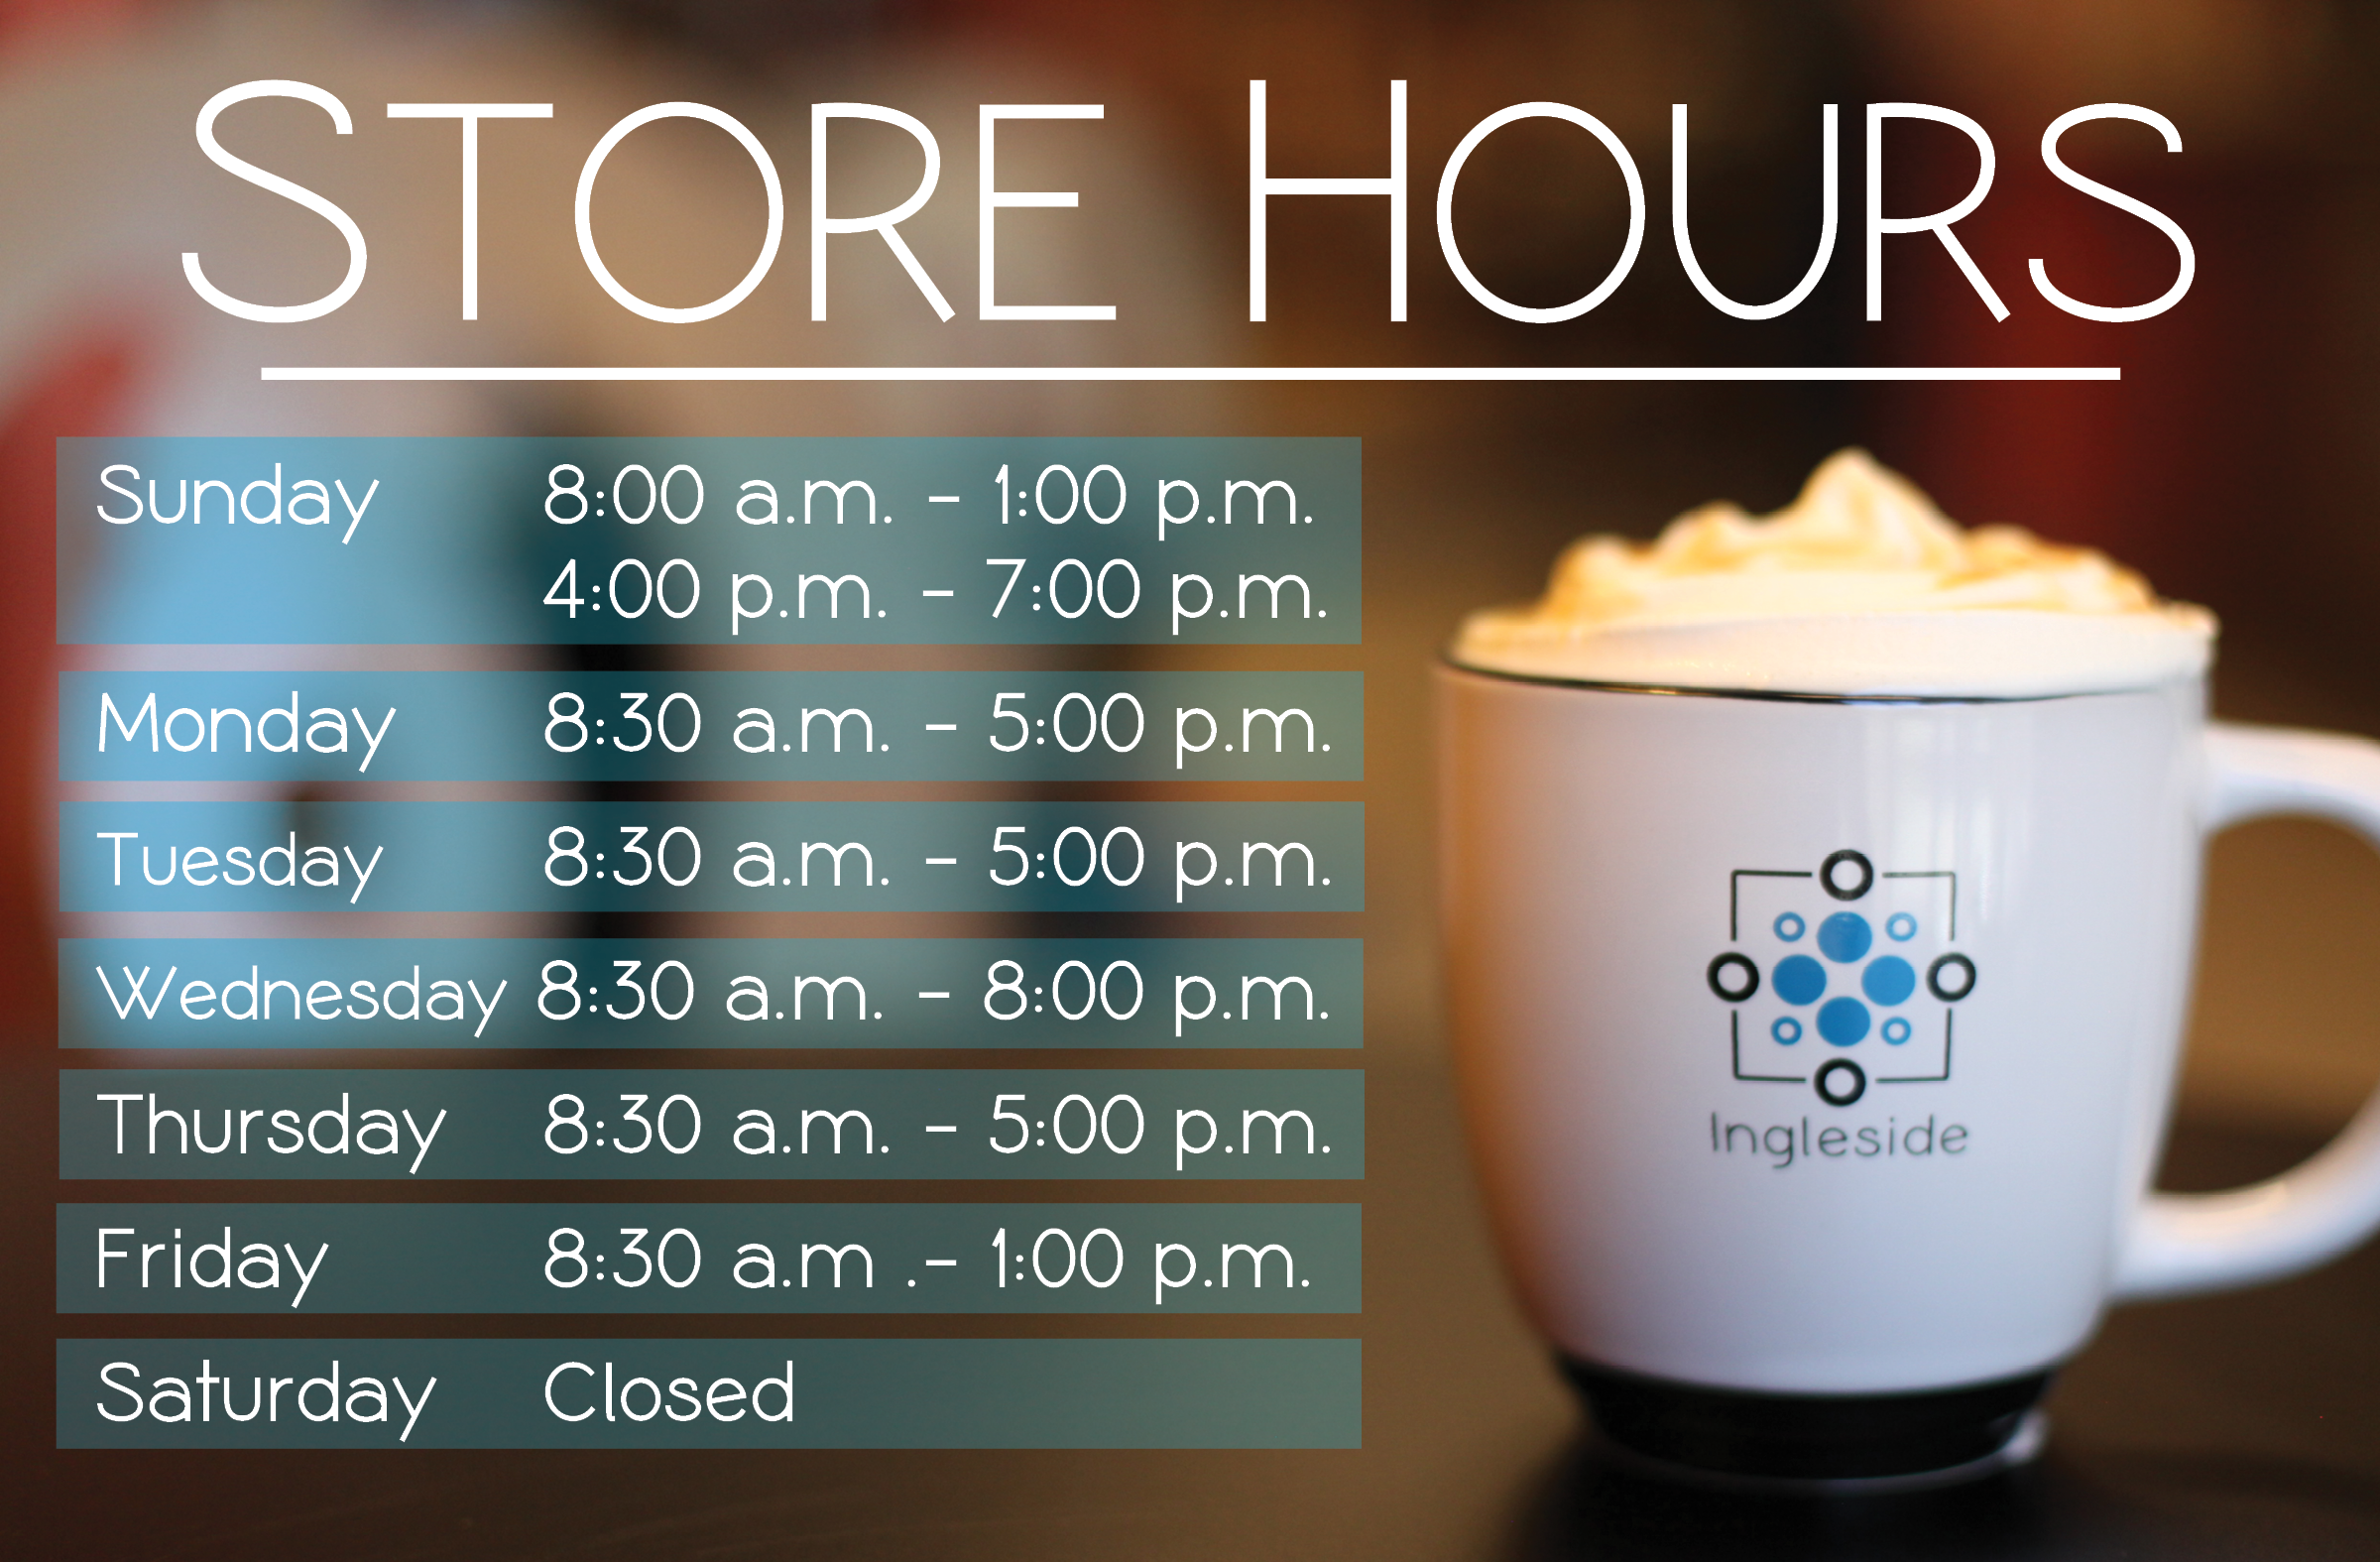 Bookstore and Cafe Hours